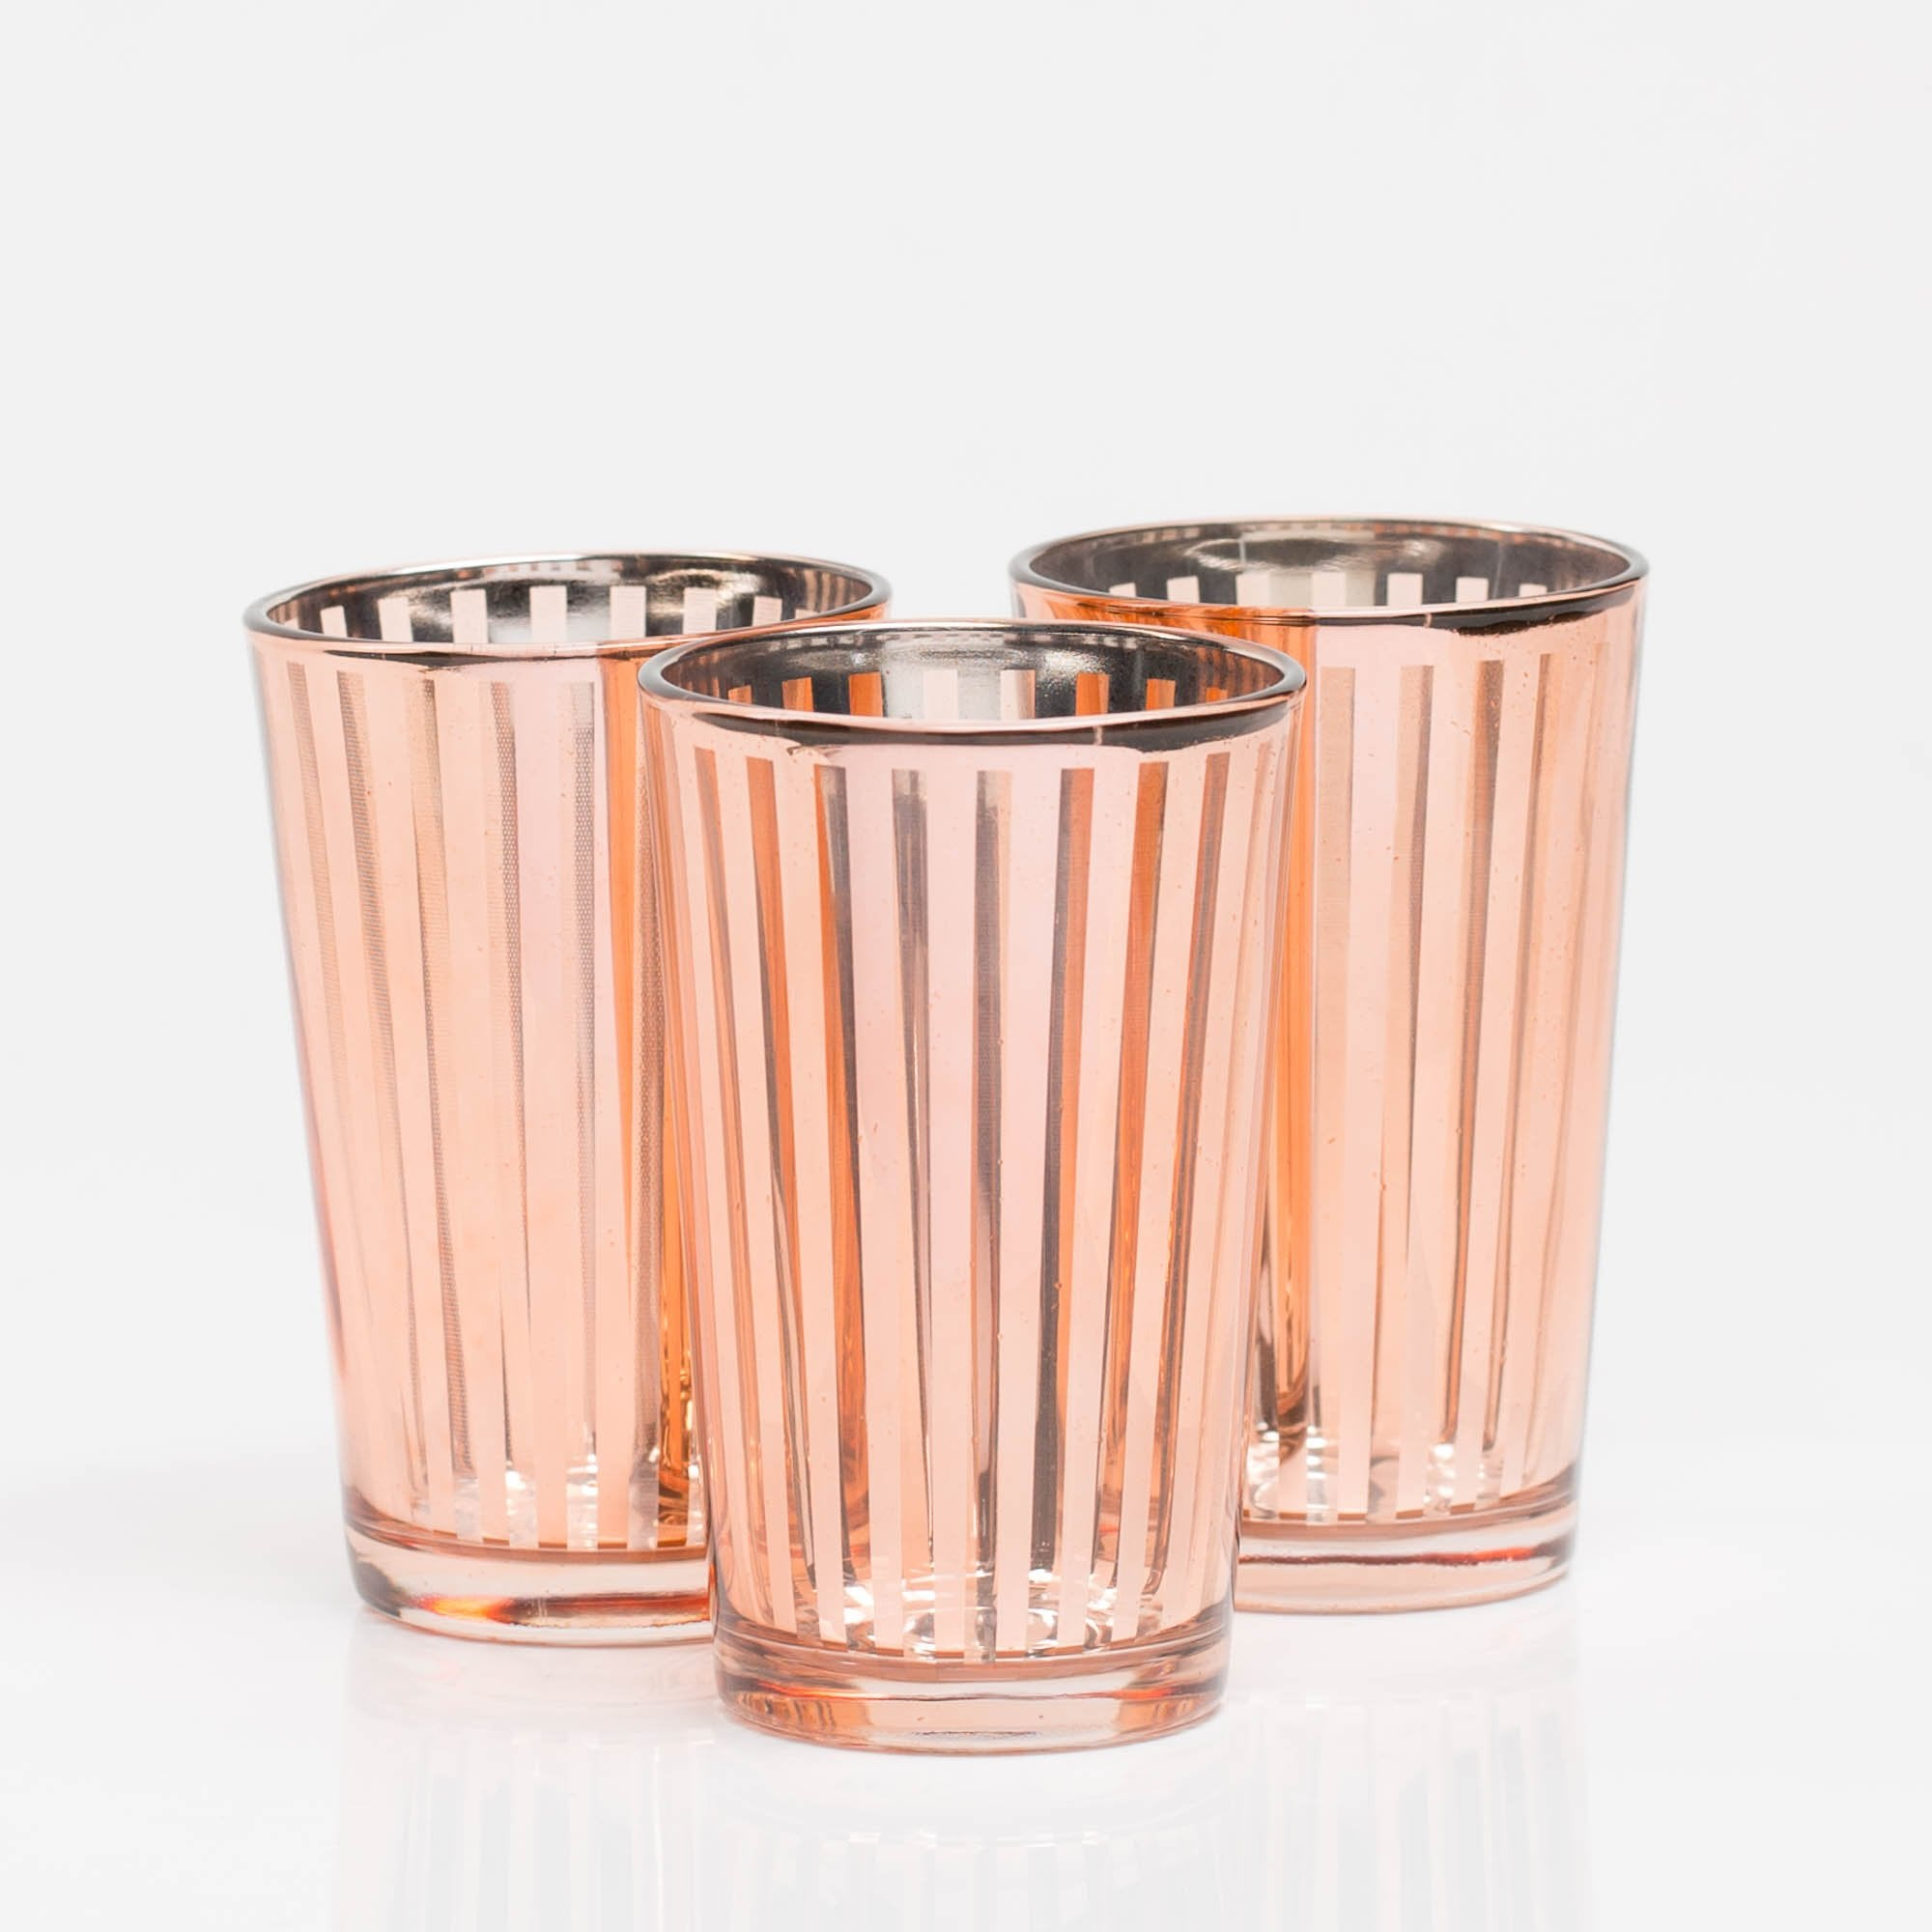 Richland Rose Gold Stripe Glass Holder - Large Set of 6